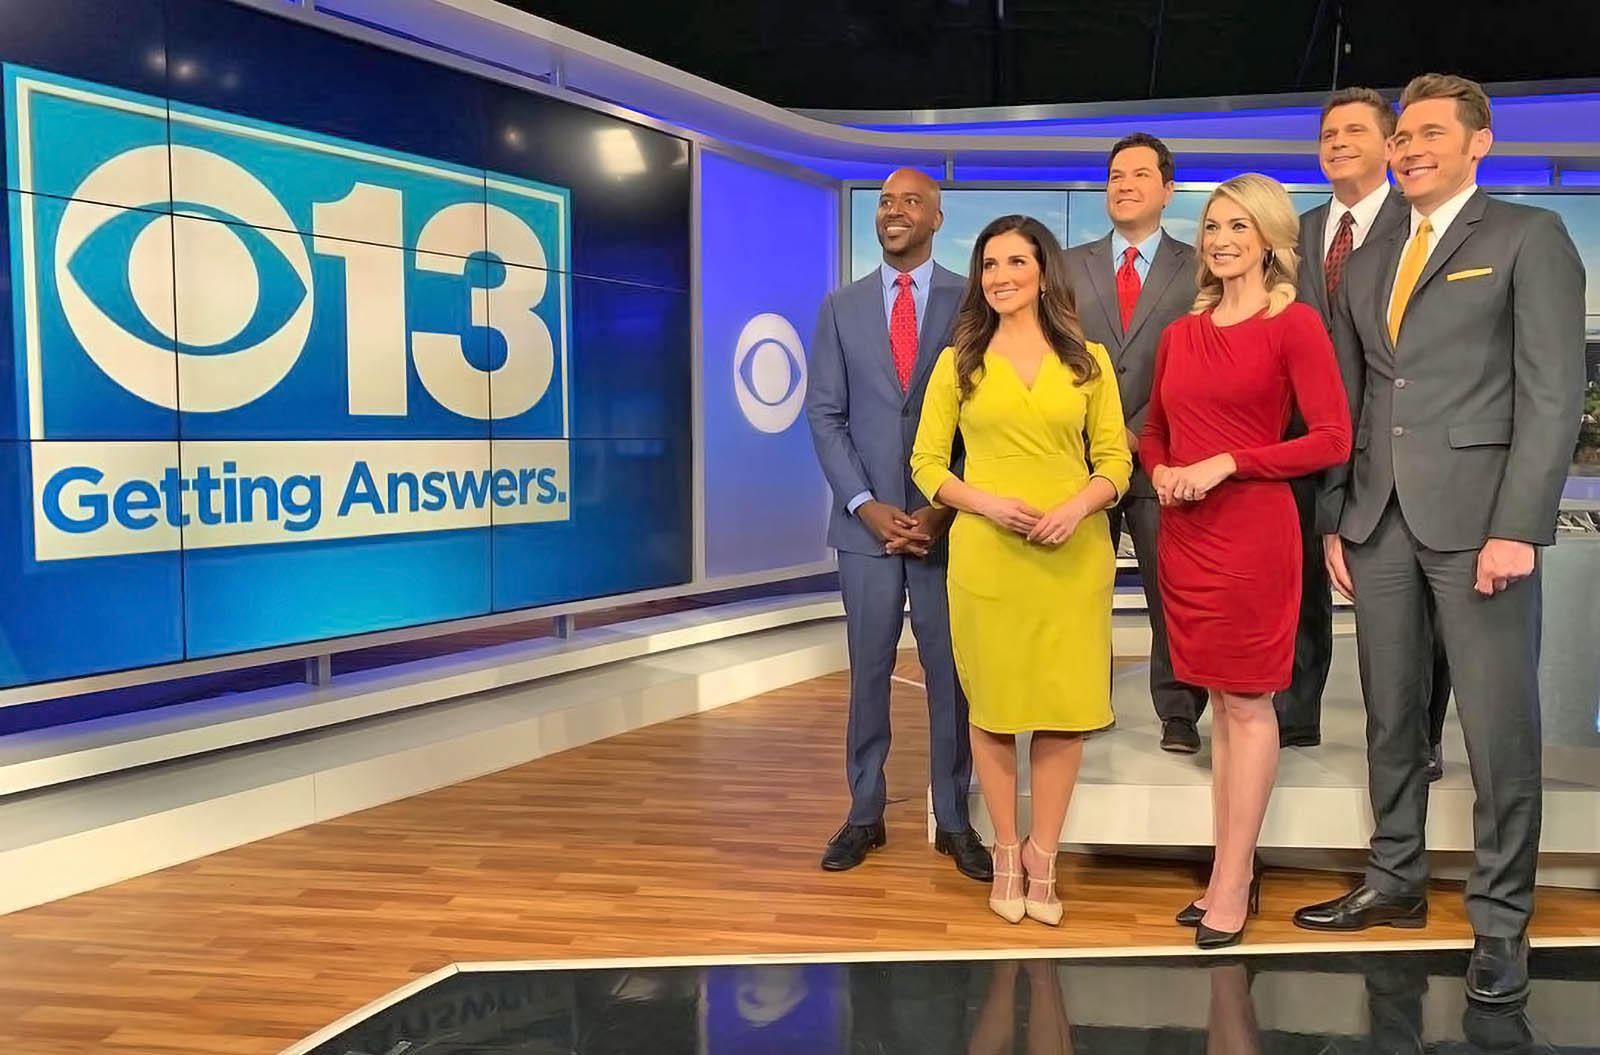 CBS 13 Sacramento live streaming anchors